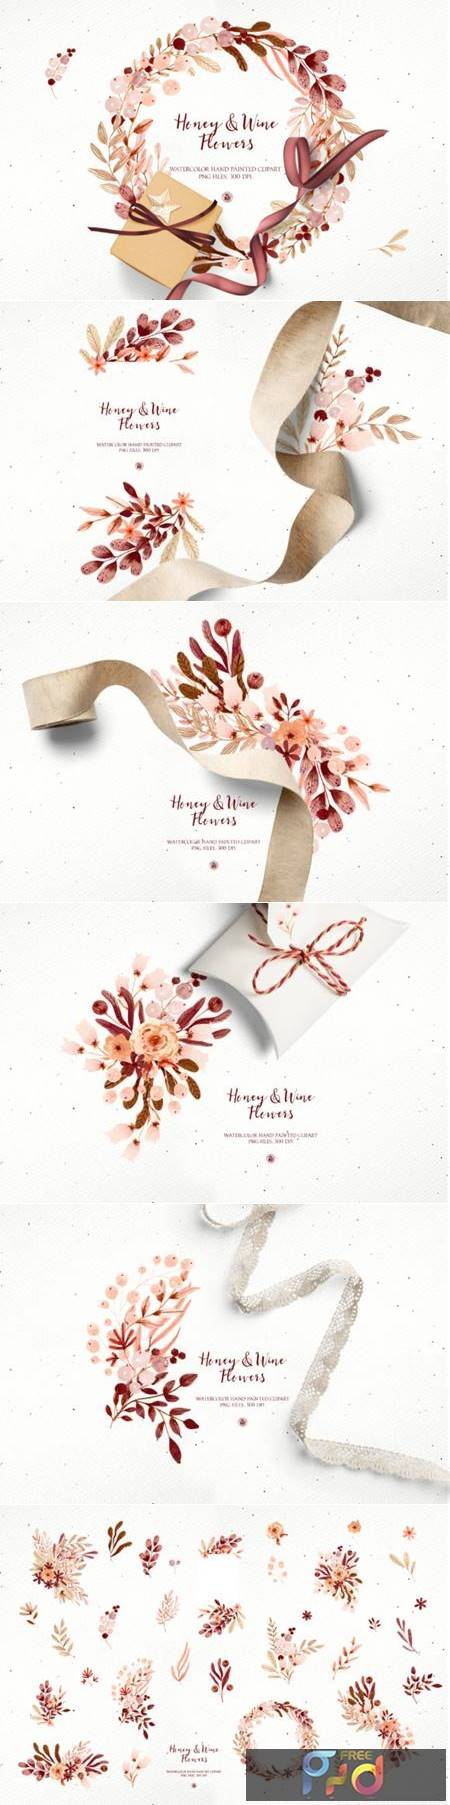 Honey and Wine Watercolor Flowers 6771228 1